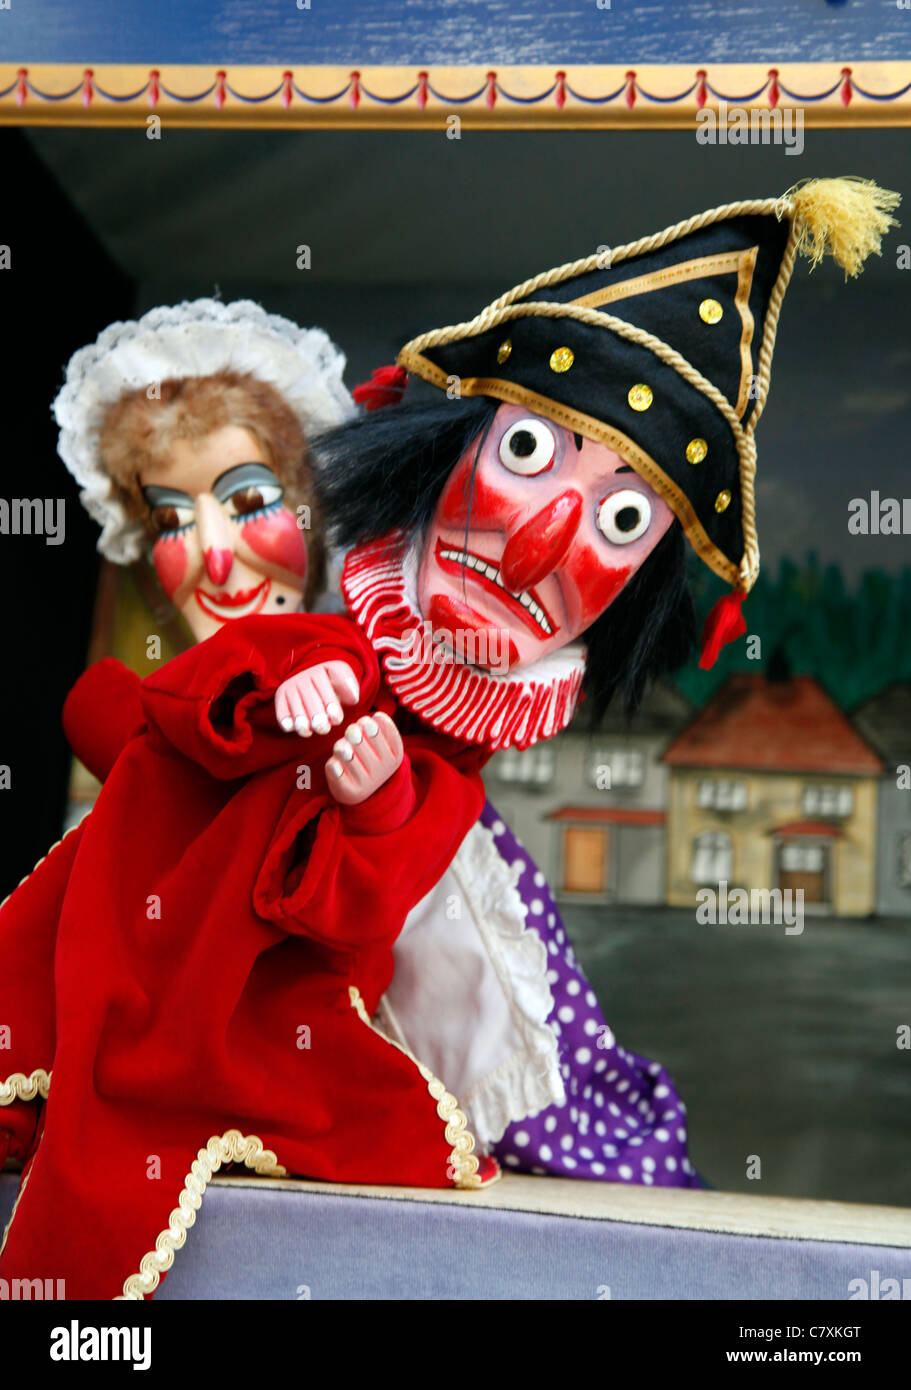 Punch and Judy Show at the Covent Garden Punch & Judy Festival in London - Stock Image